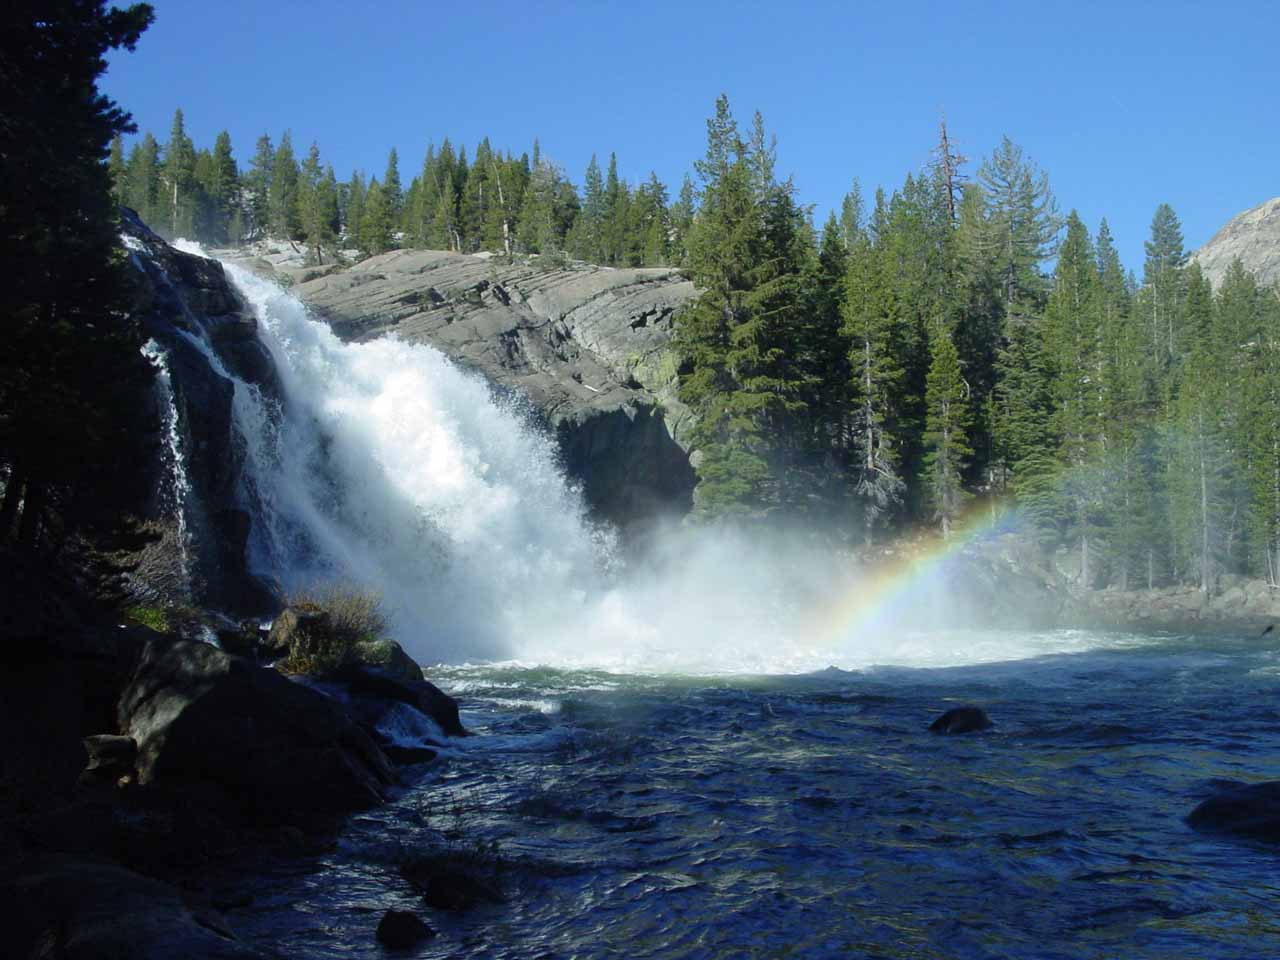 Morning rainbow at the White Cascade (or Glen Aulin Falls)